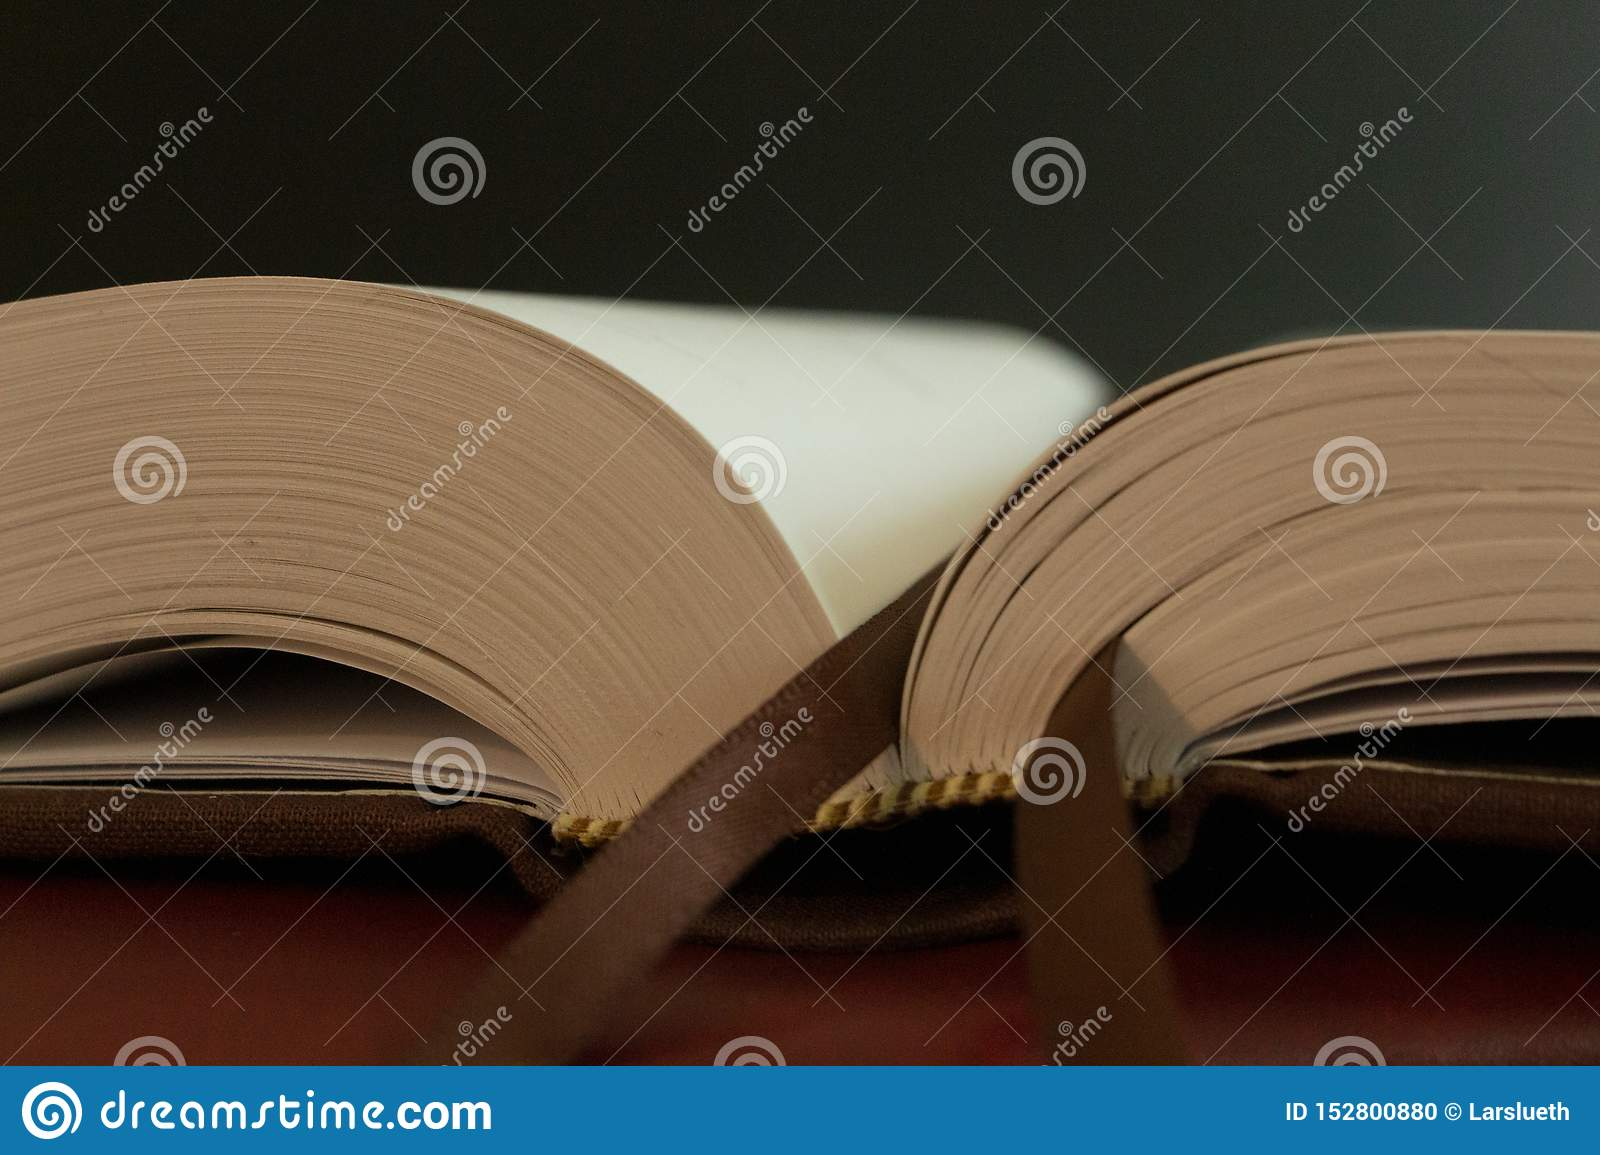 A bookmark on the pages of an open book